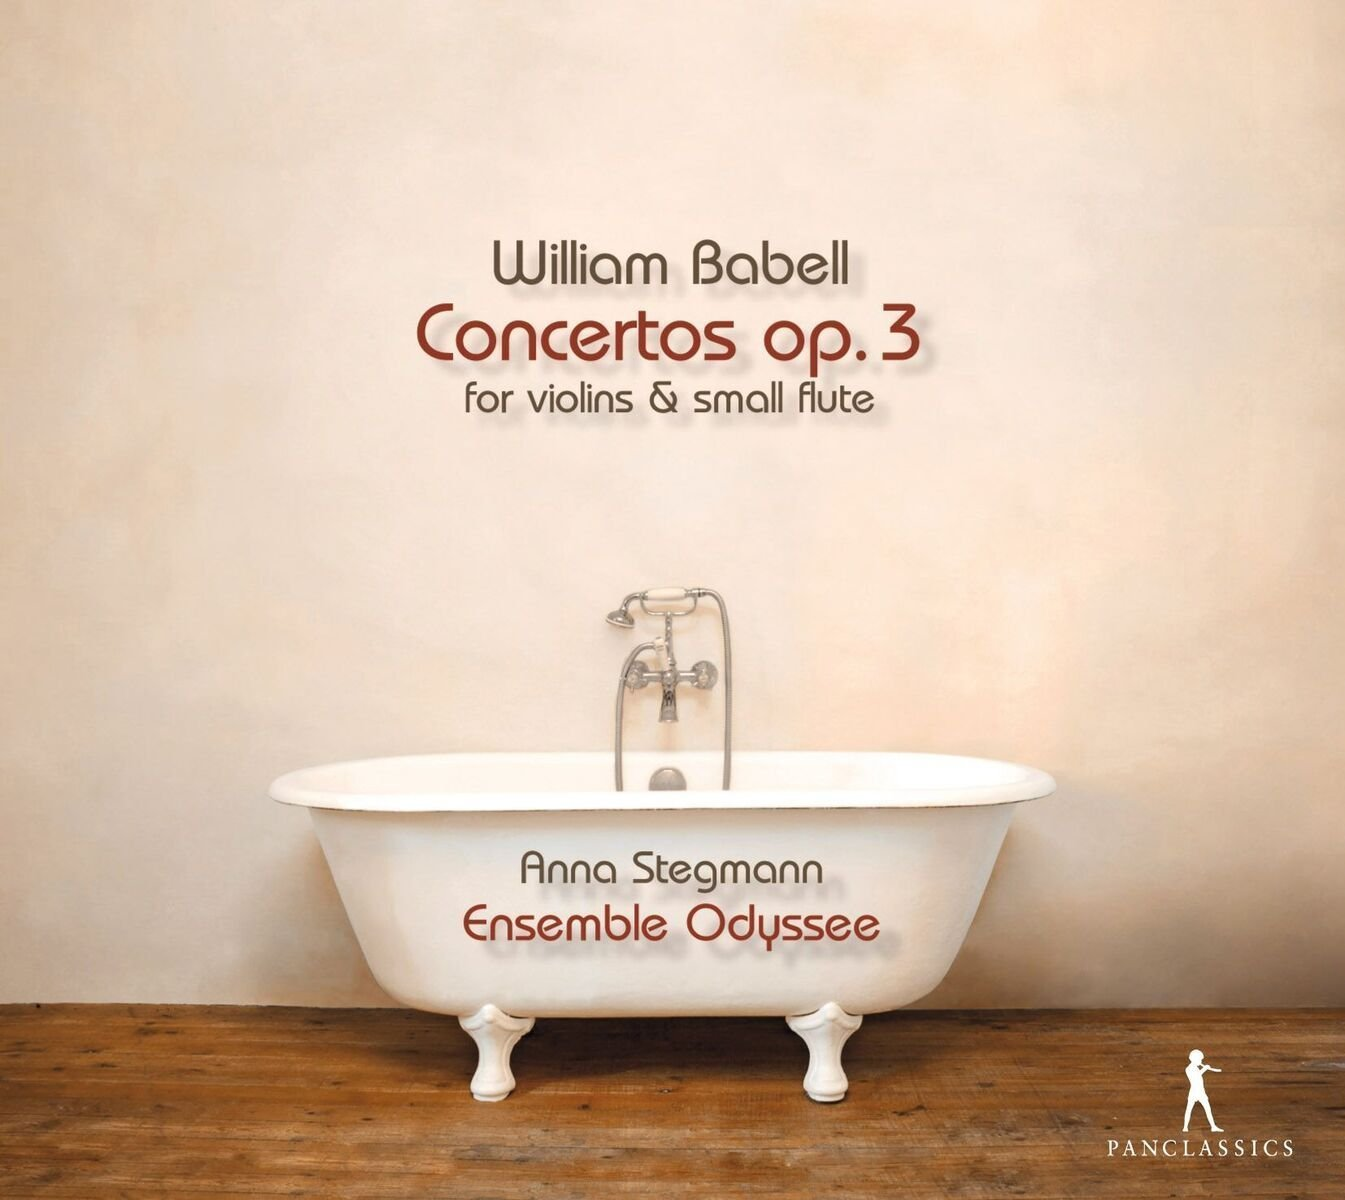 William Babell: Concertos op. 3